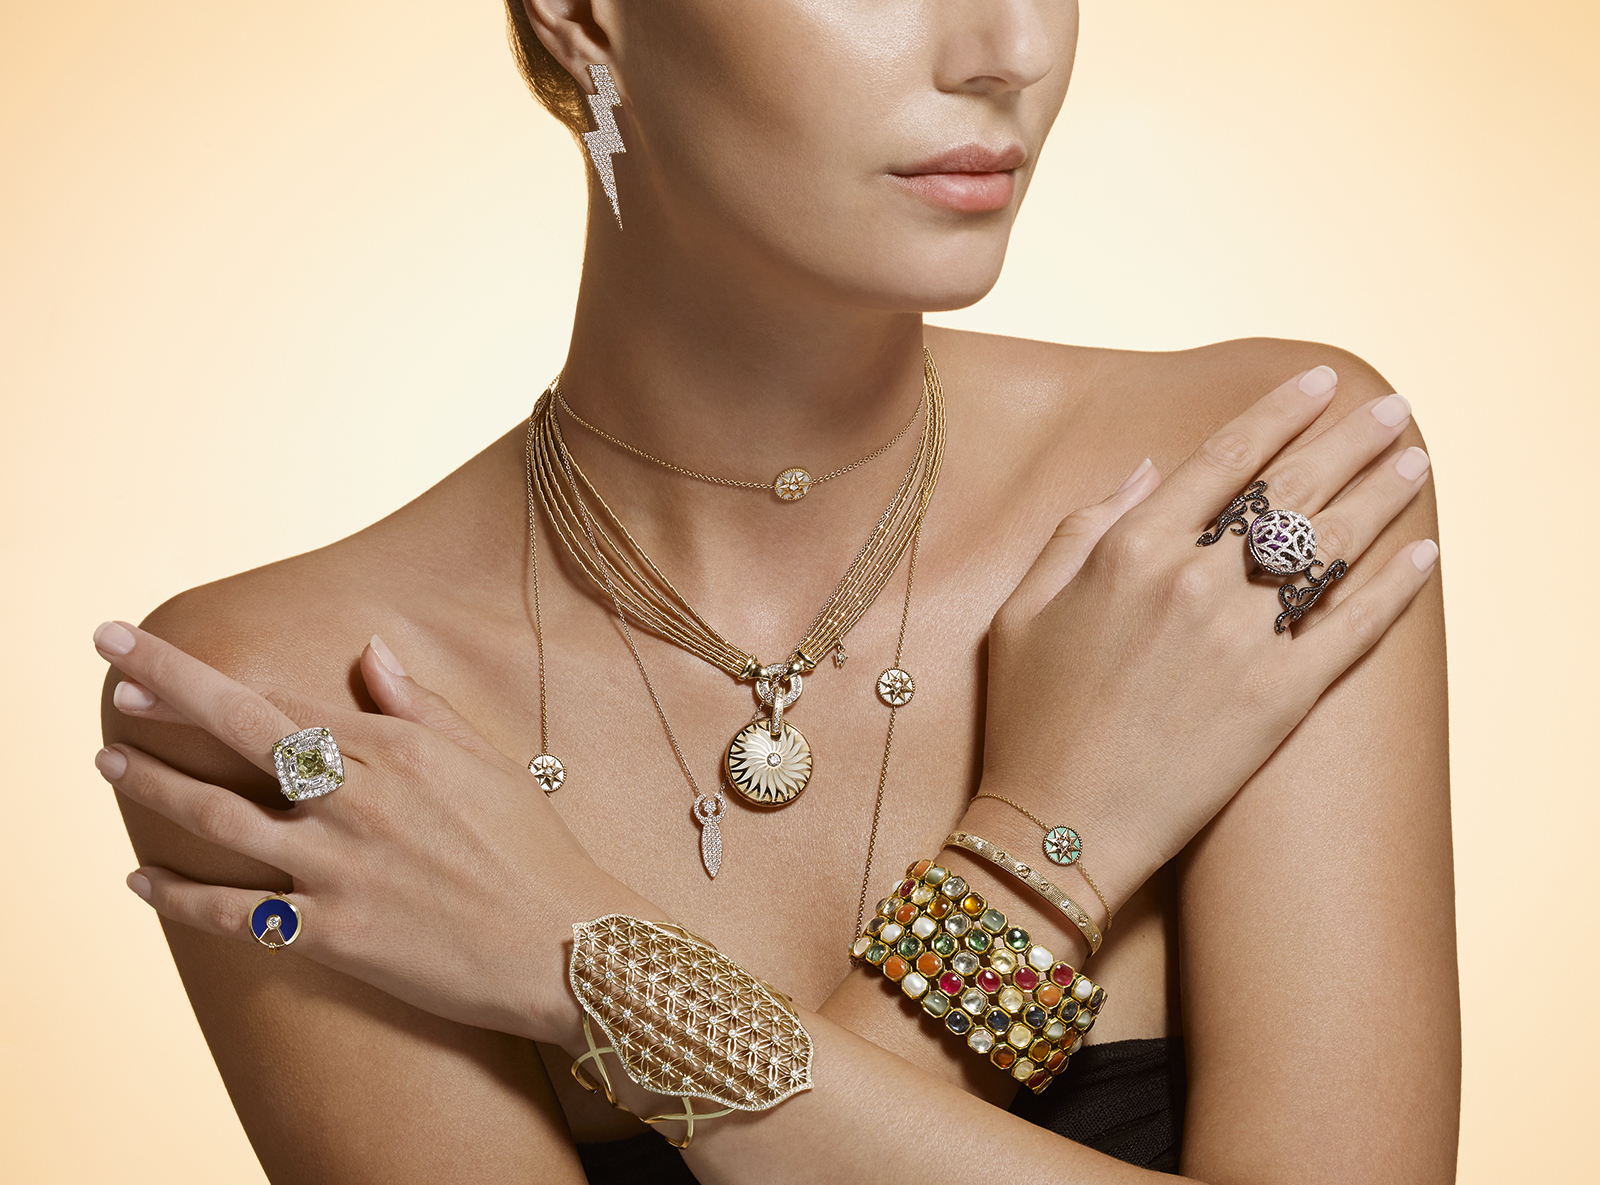 86a87ad123 Modern-day talismans and amulets | How To Spend It